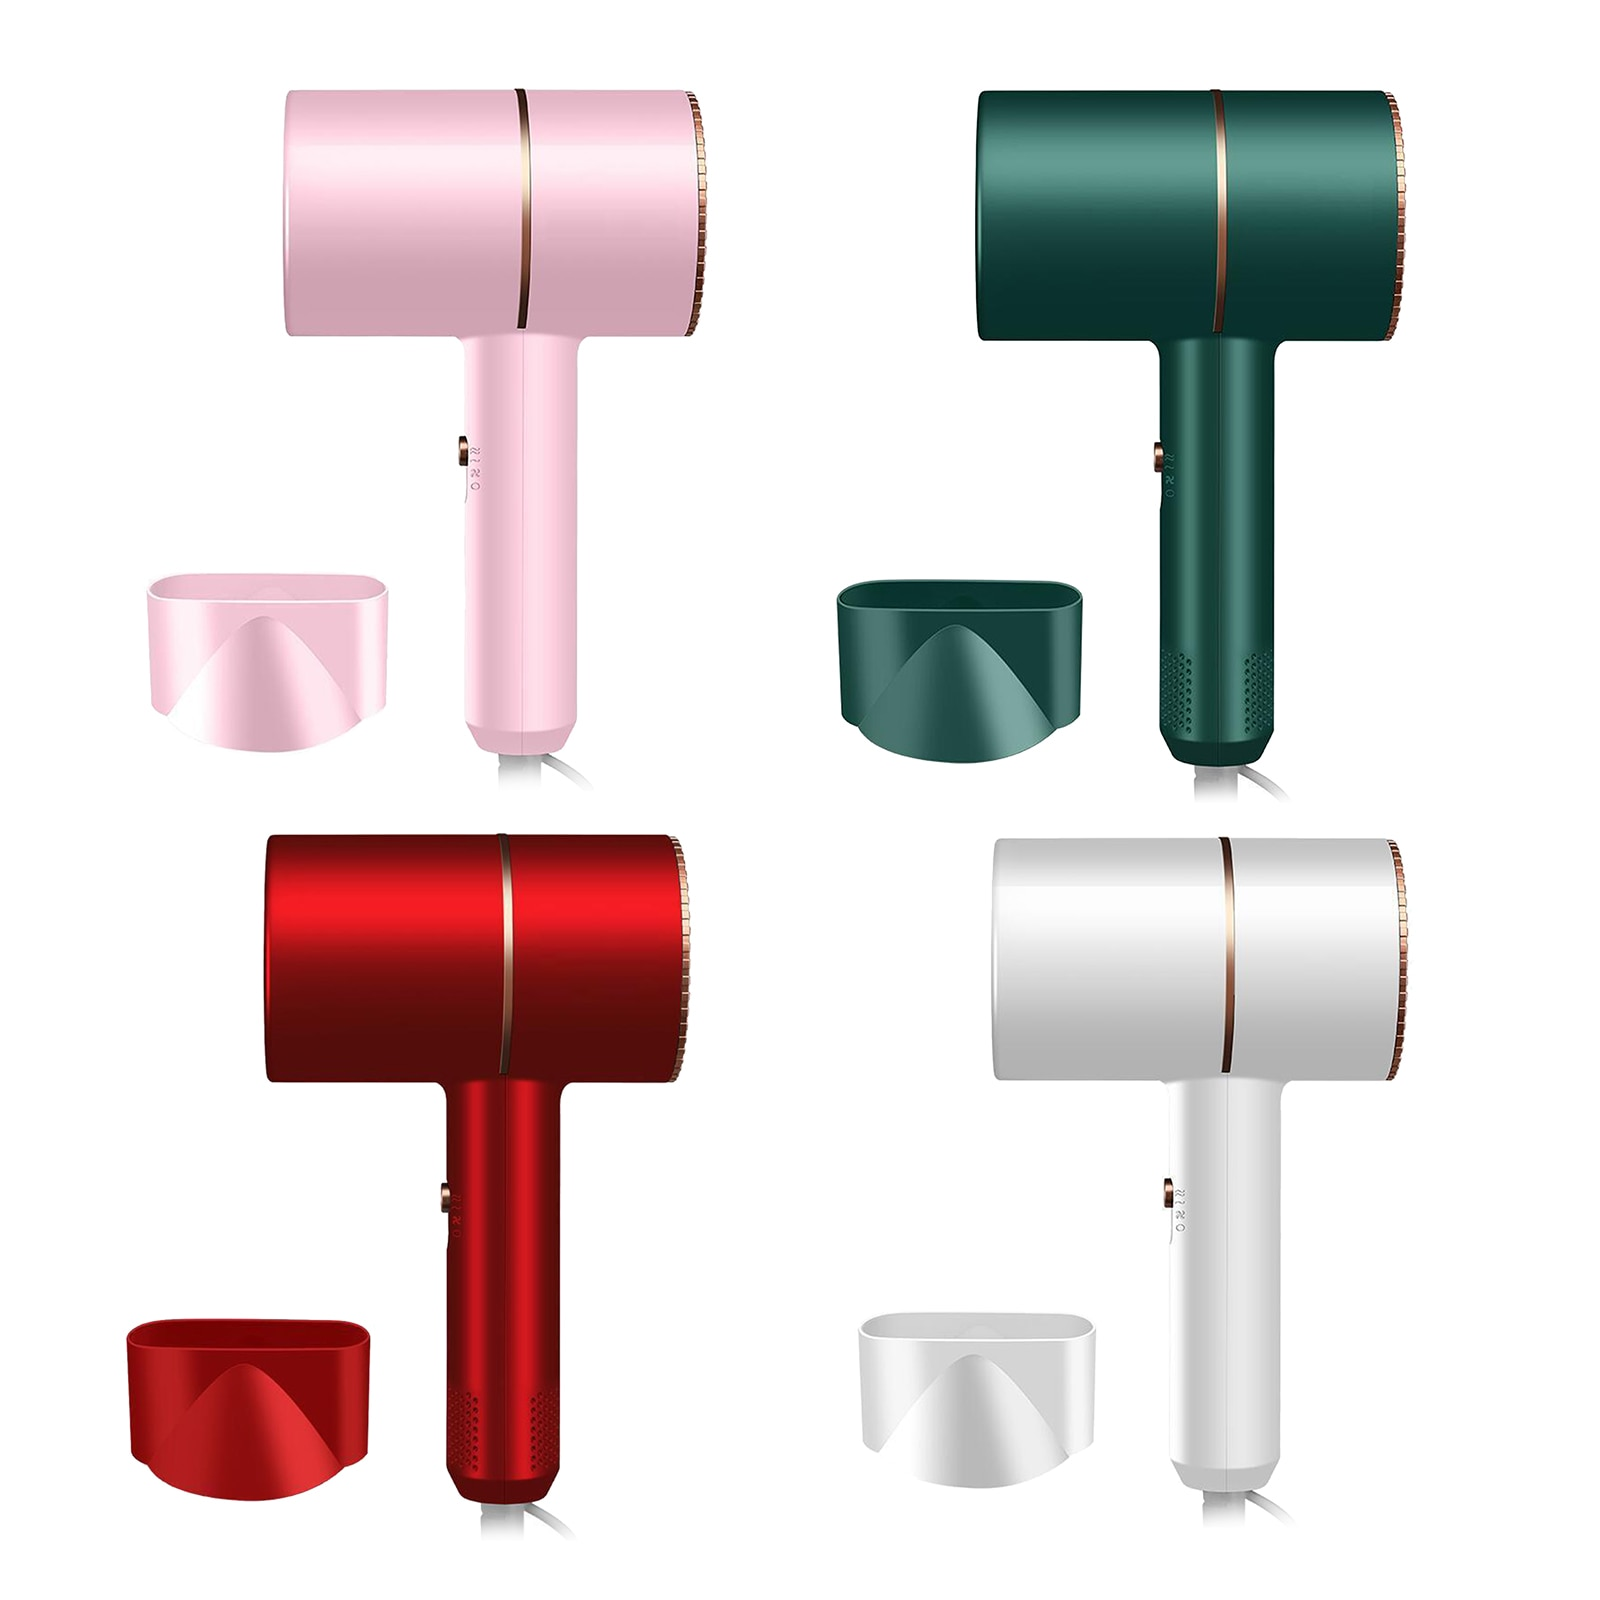 Hammer Hair Dryer Constant Temperature Fast Drying Blow Dryer 3 Gears Hot & Cold Wind for Home Travel US Plug